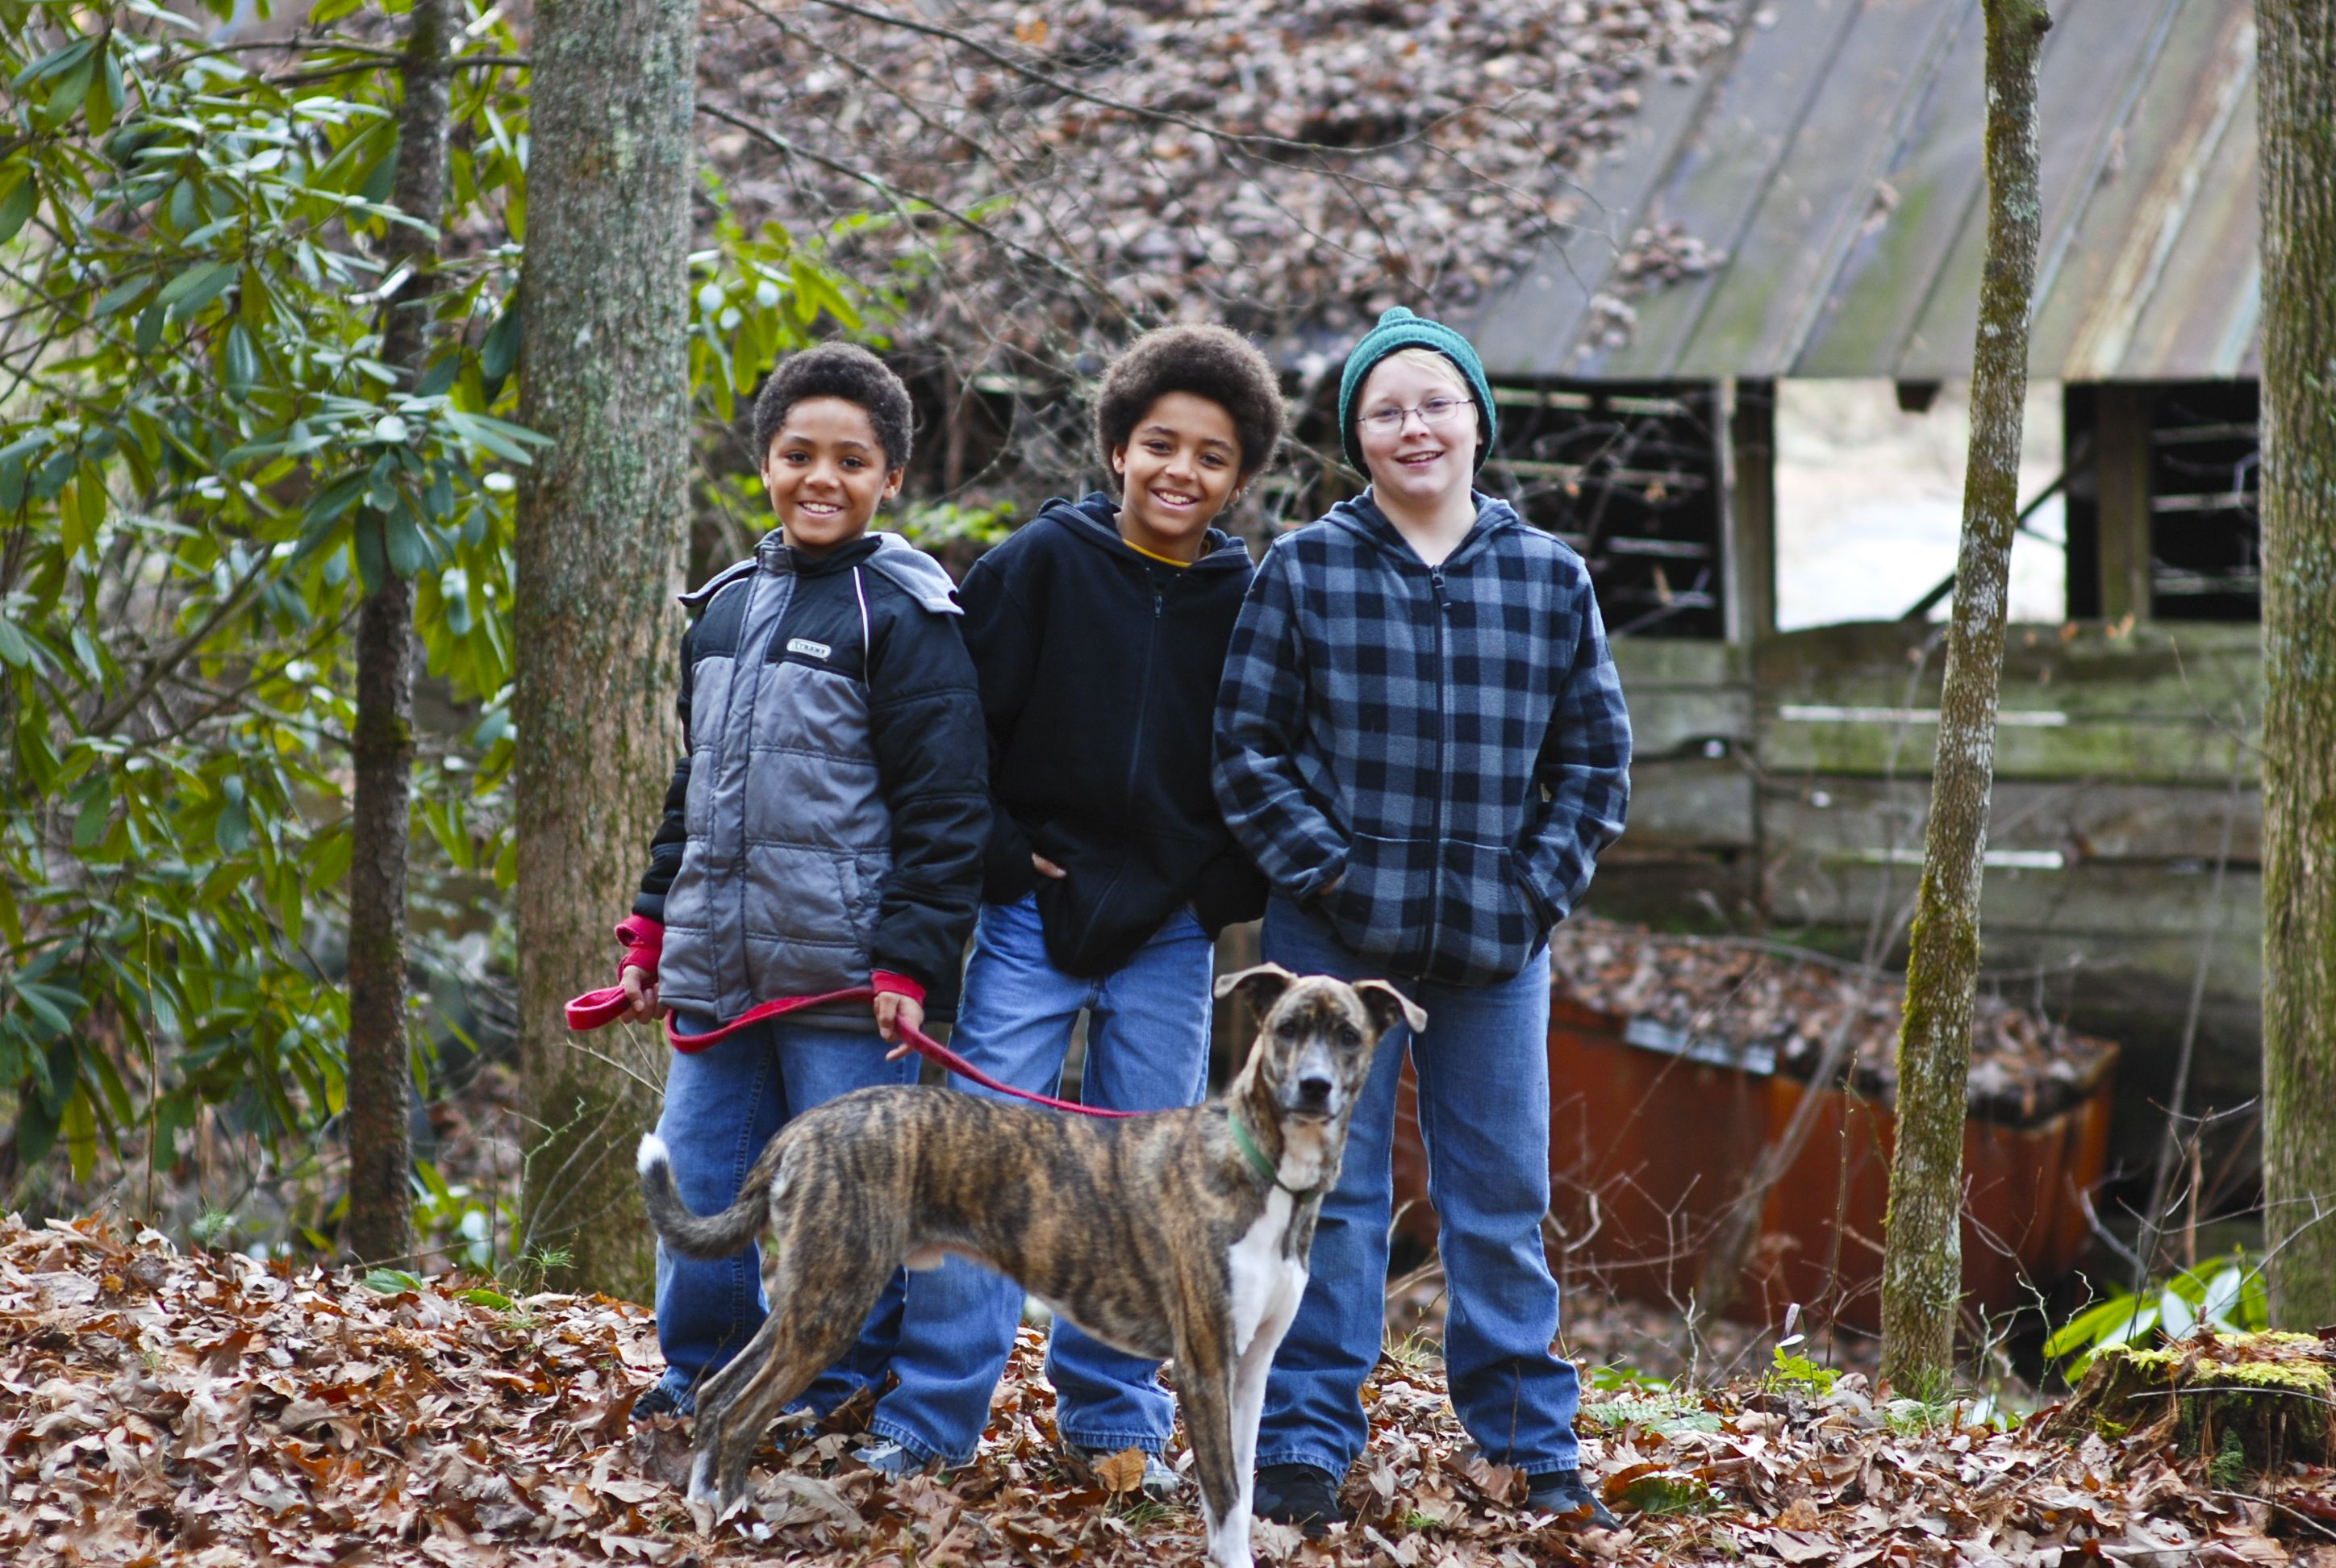 The three amigos and our dog Raider.  This is the view from our North Carolina cabin.  One of our favorite getaways!